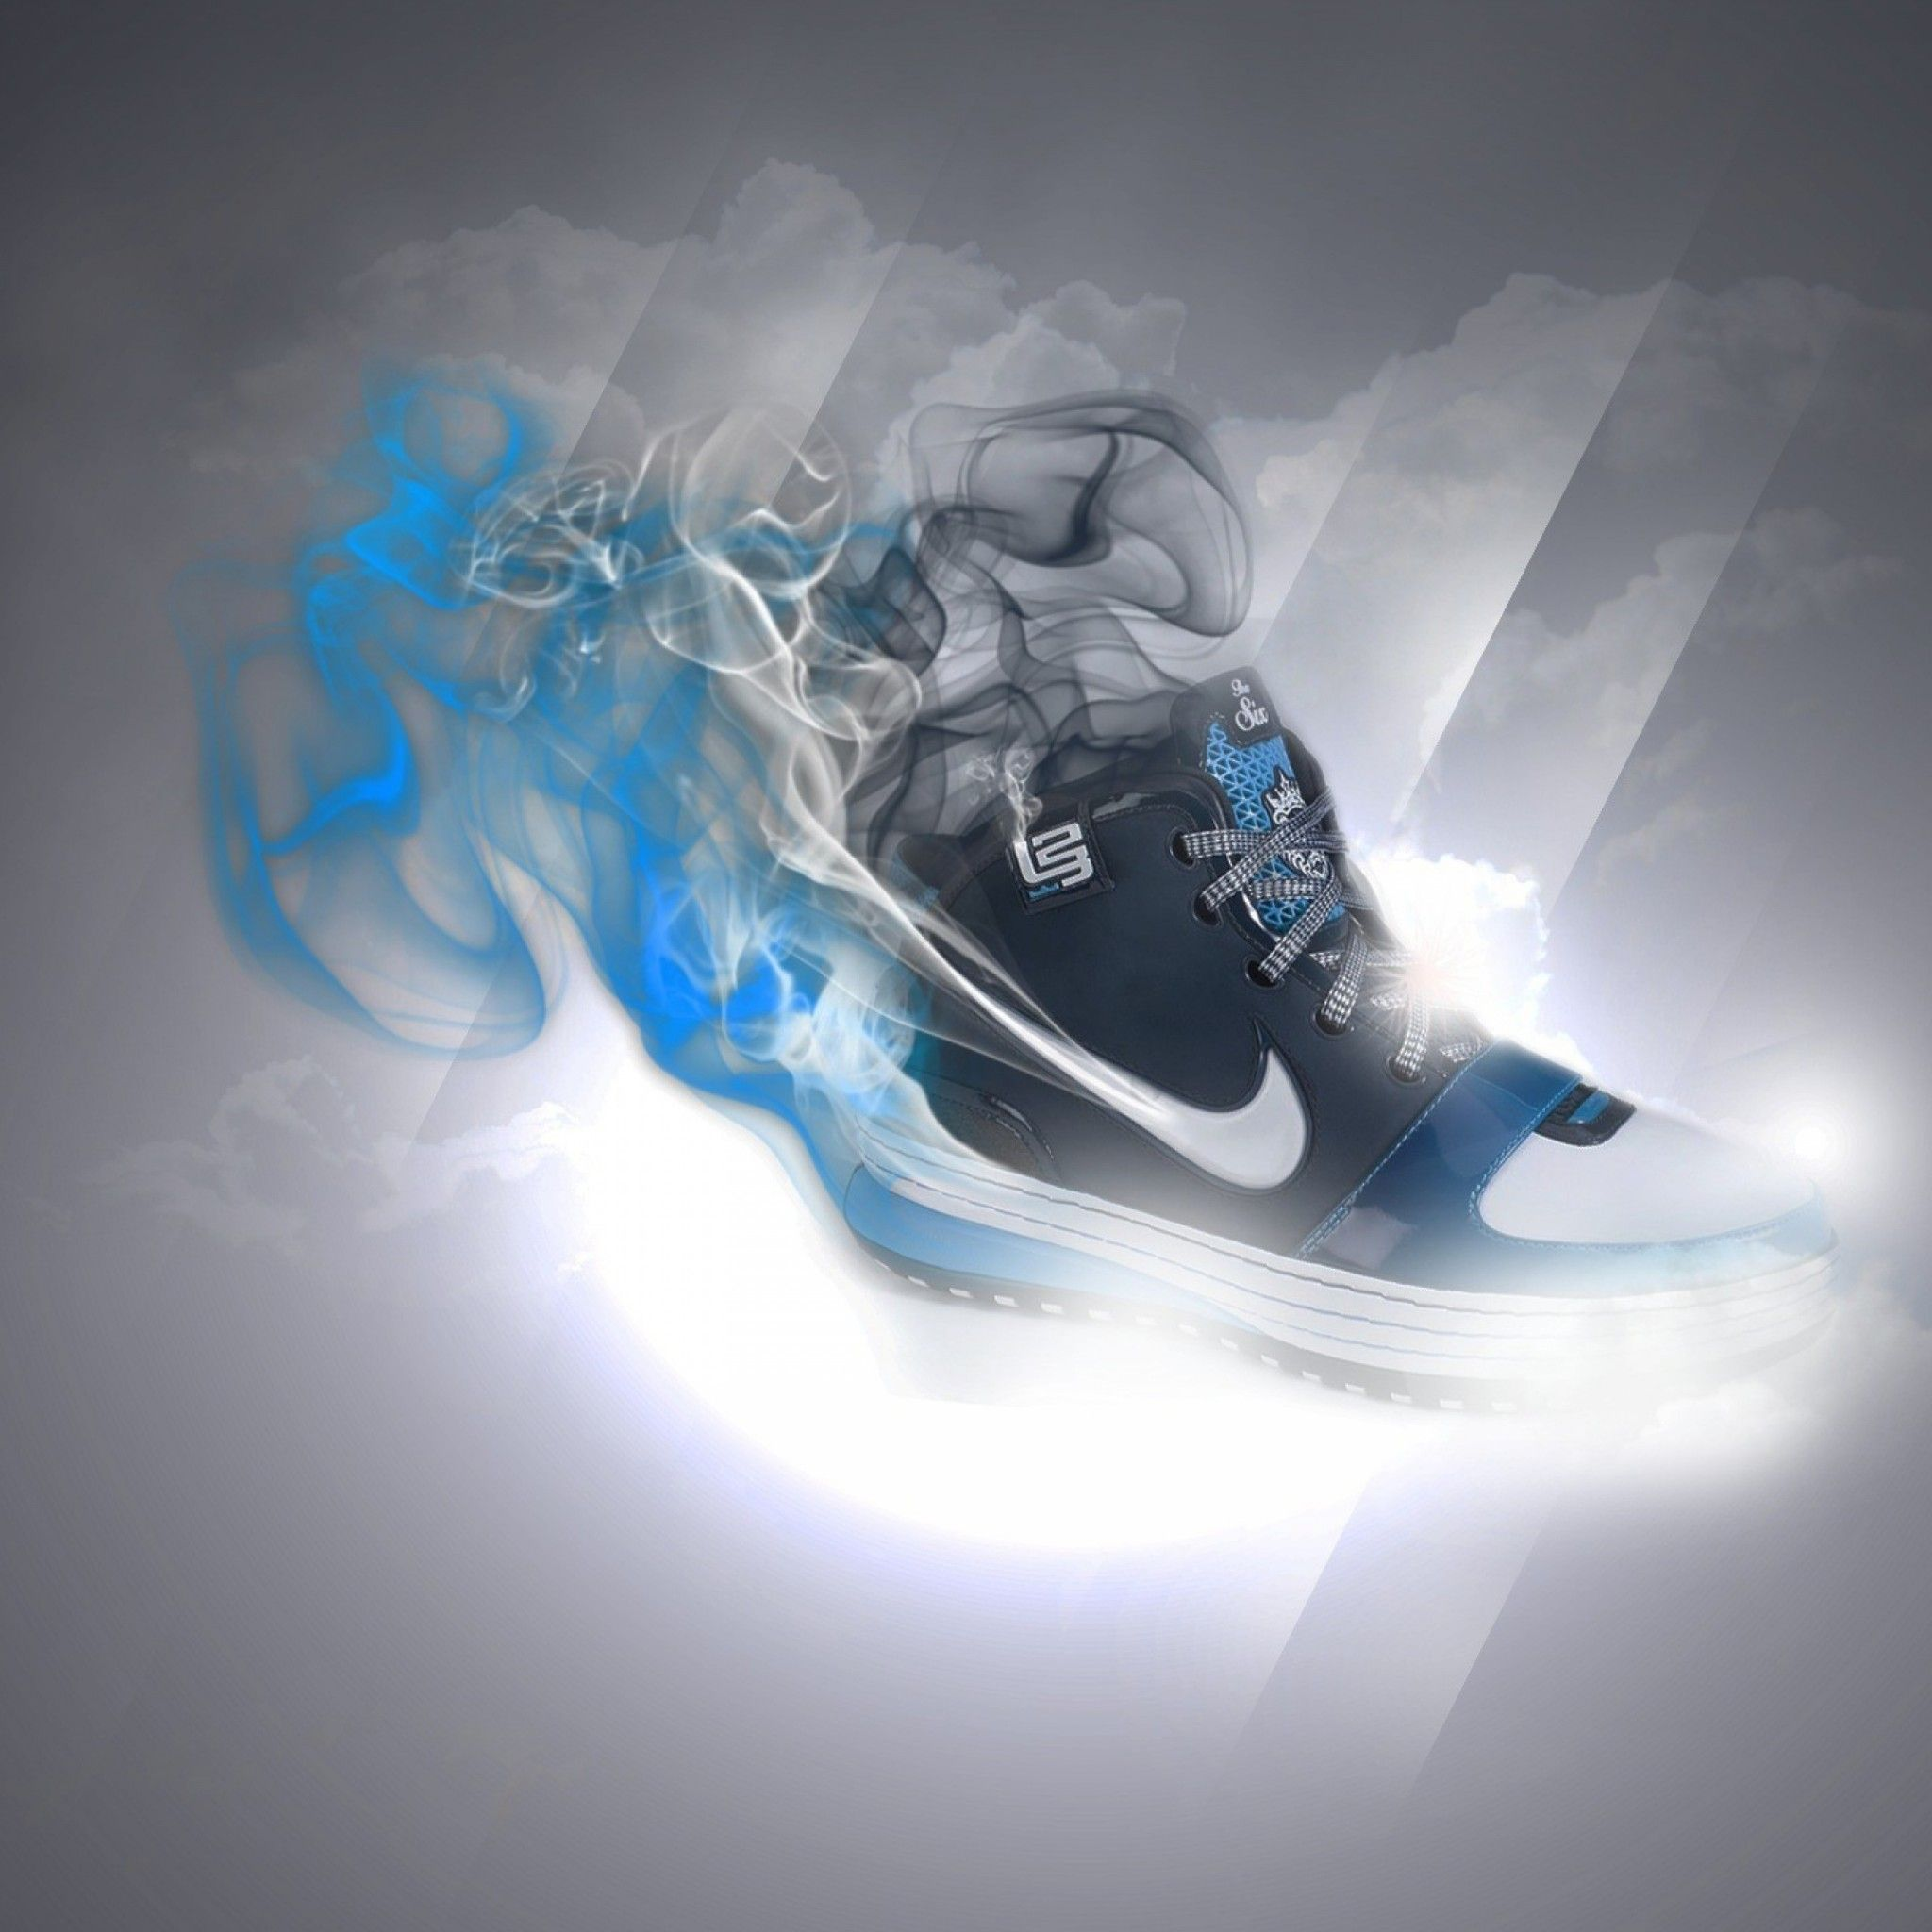 Nike Sneakers Apple iPhone 5s hd wallpapers available for free download.